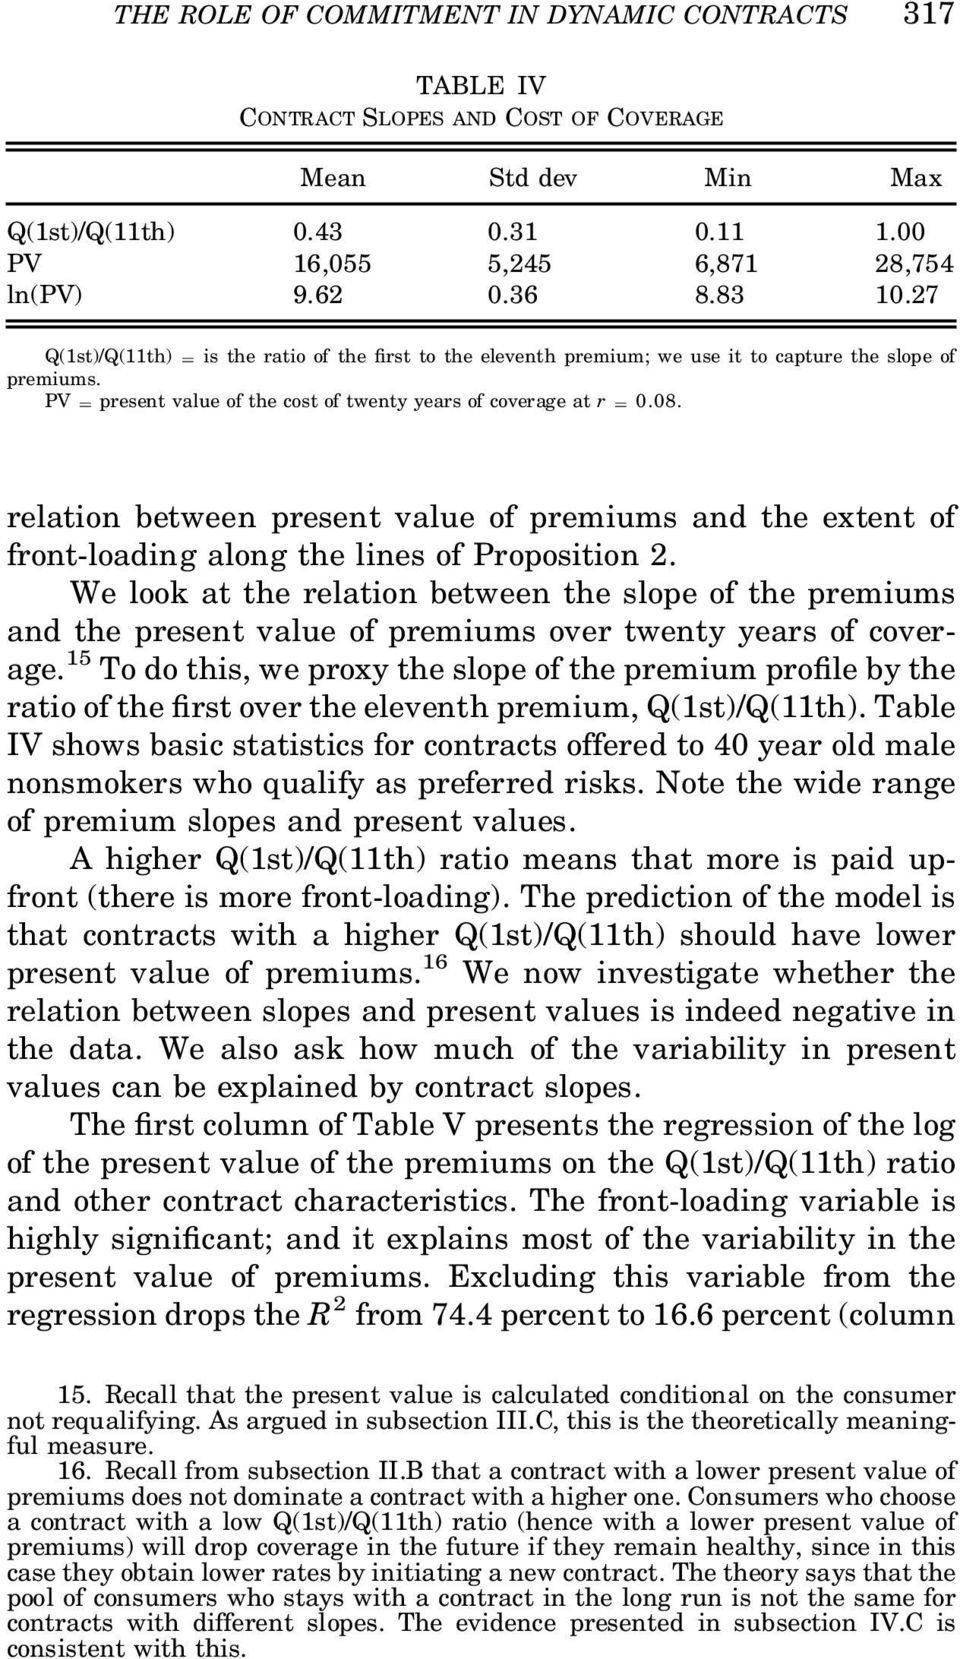 relaton between present value of premums and the extent of front-loadng along the lnes of Proposton 2.